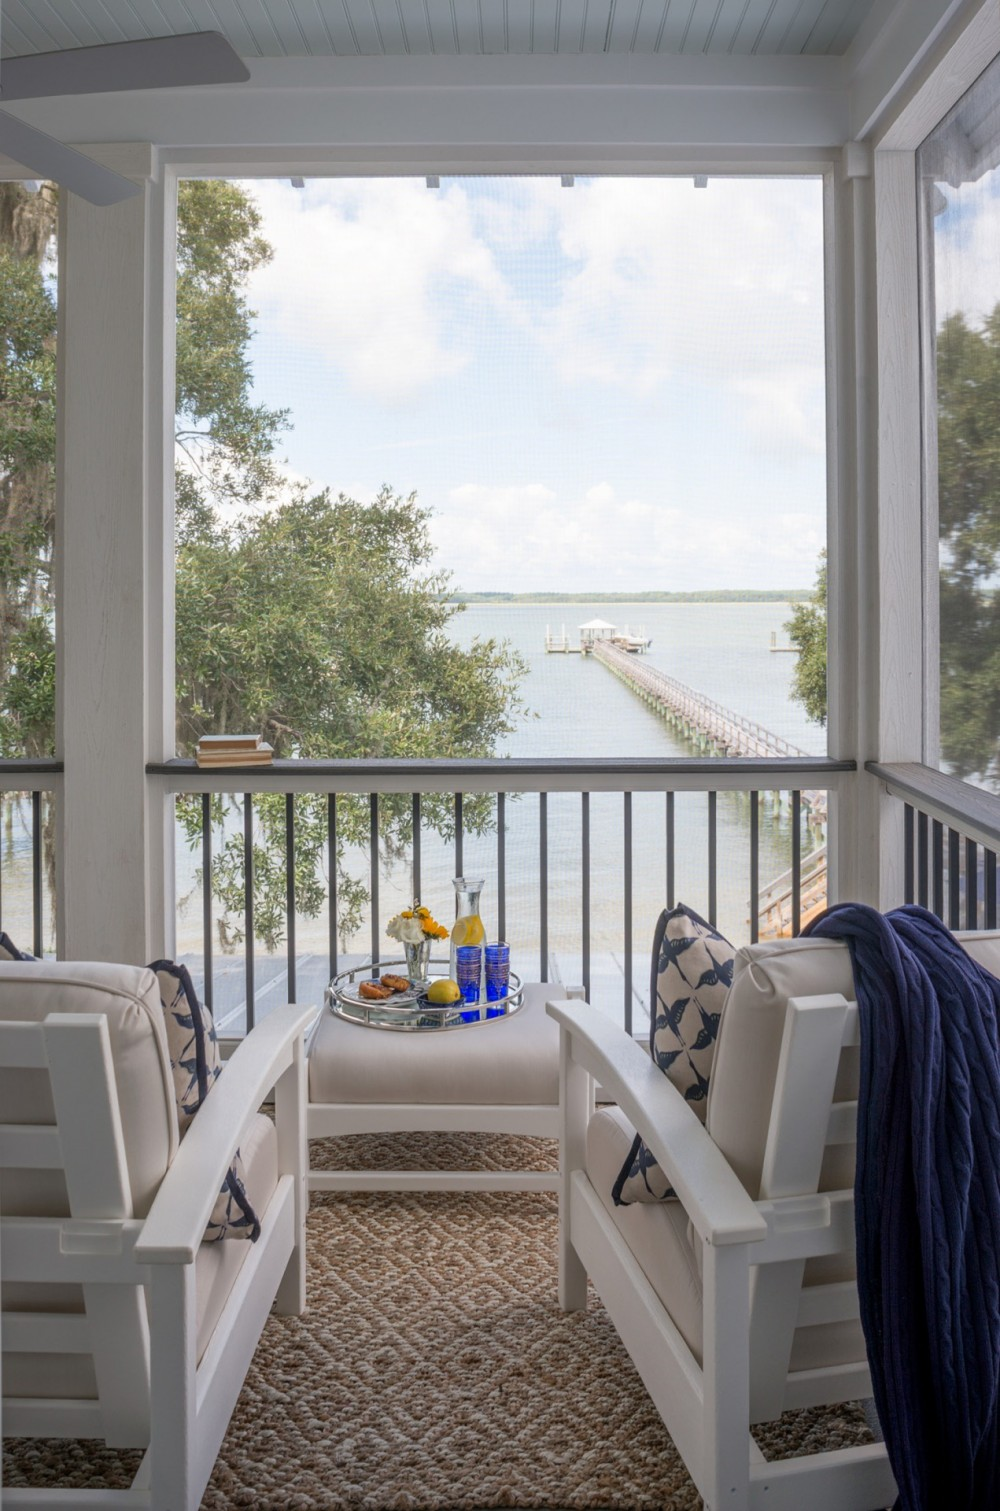 The back screen porch is a prime spot for an   apres  -sun snack and sip overlooking Port Royal Sound.